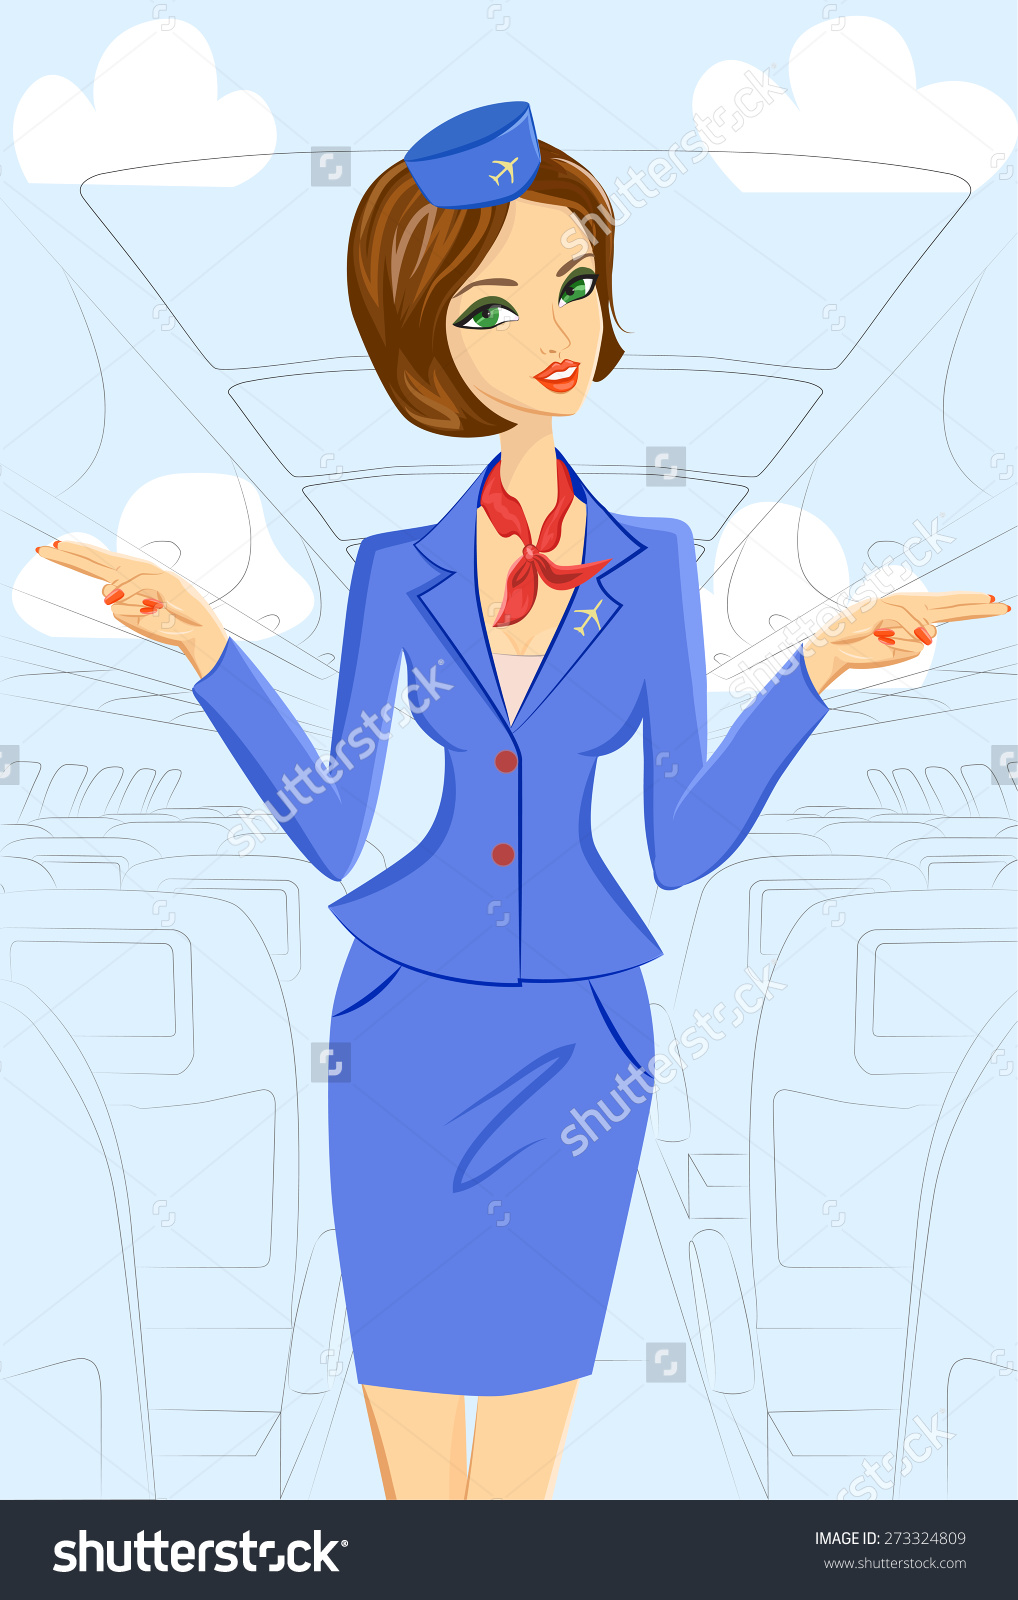 Wings clipart flight attendant Cheerful In Cheerful Blue Attendant